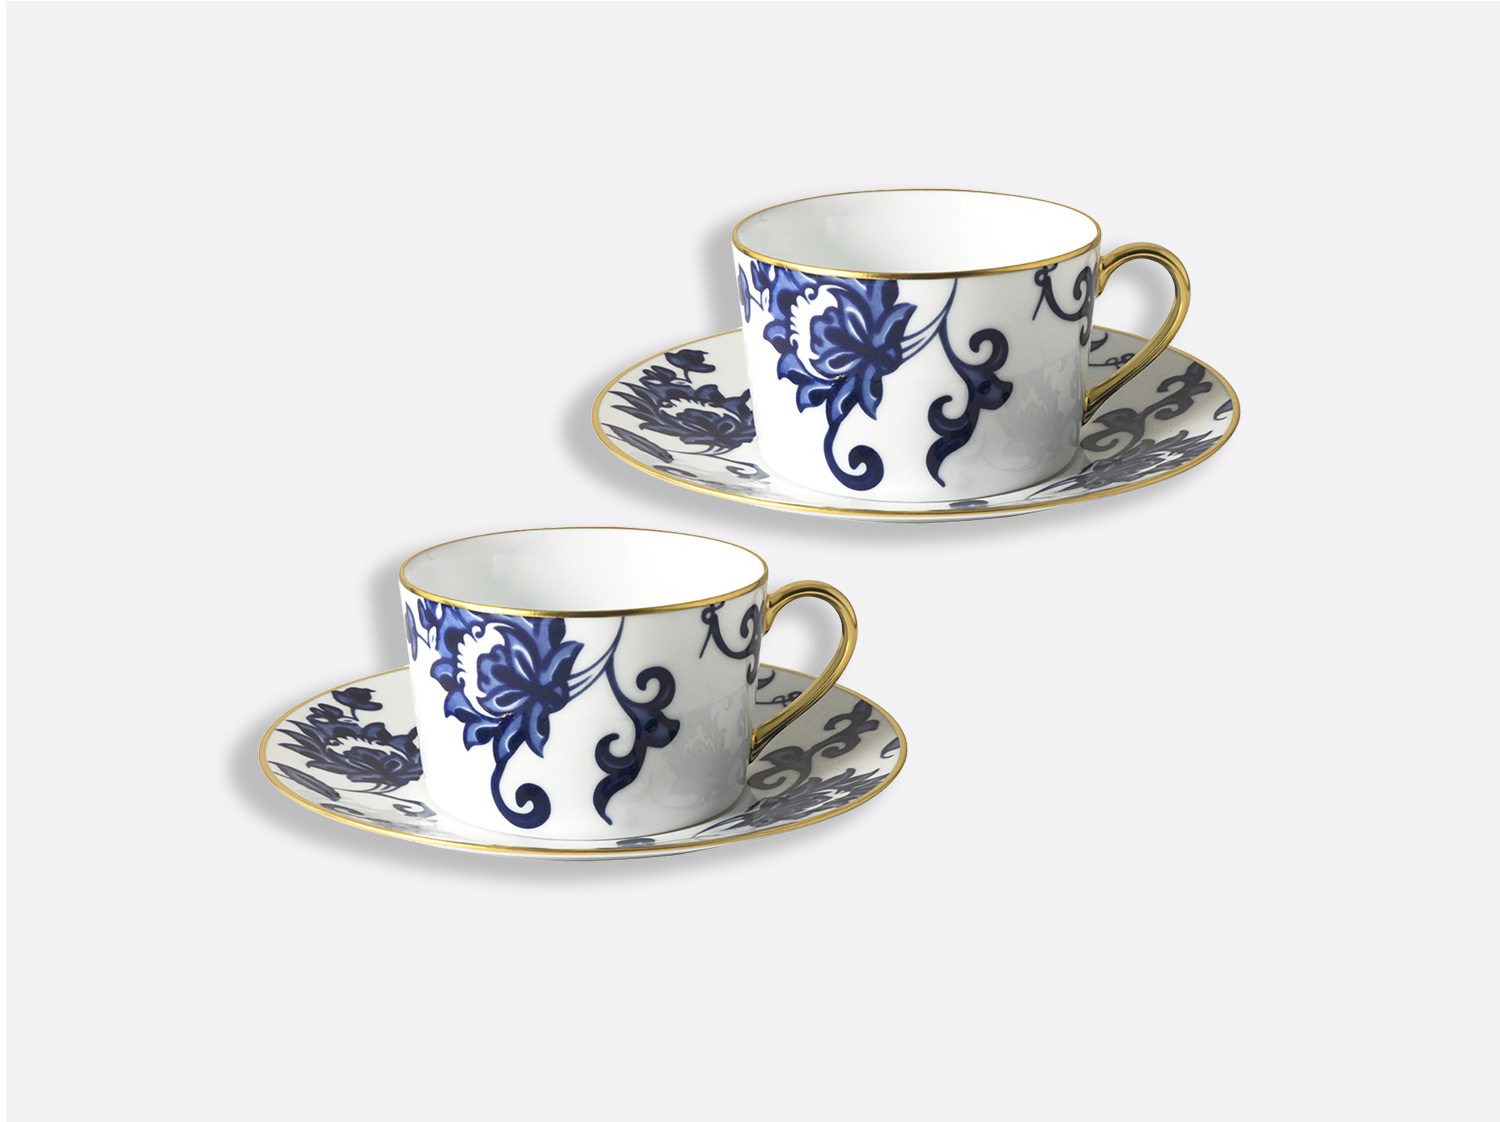 China Gift box set of 2 breakfast cups and saucers 8.5 oz of the collection Prince bleu | Bernardaud